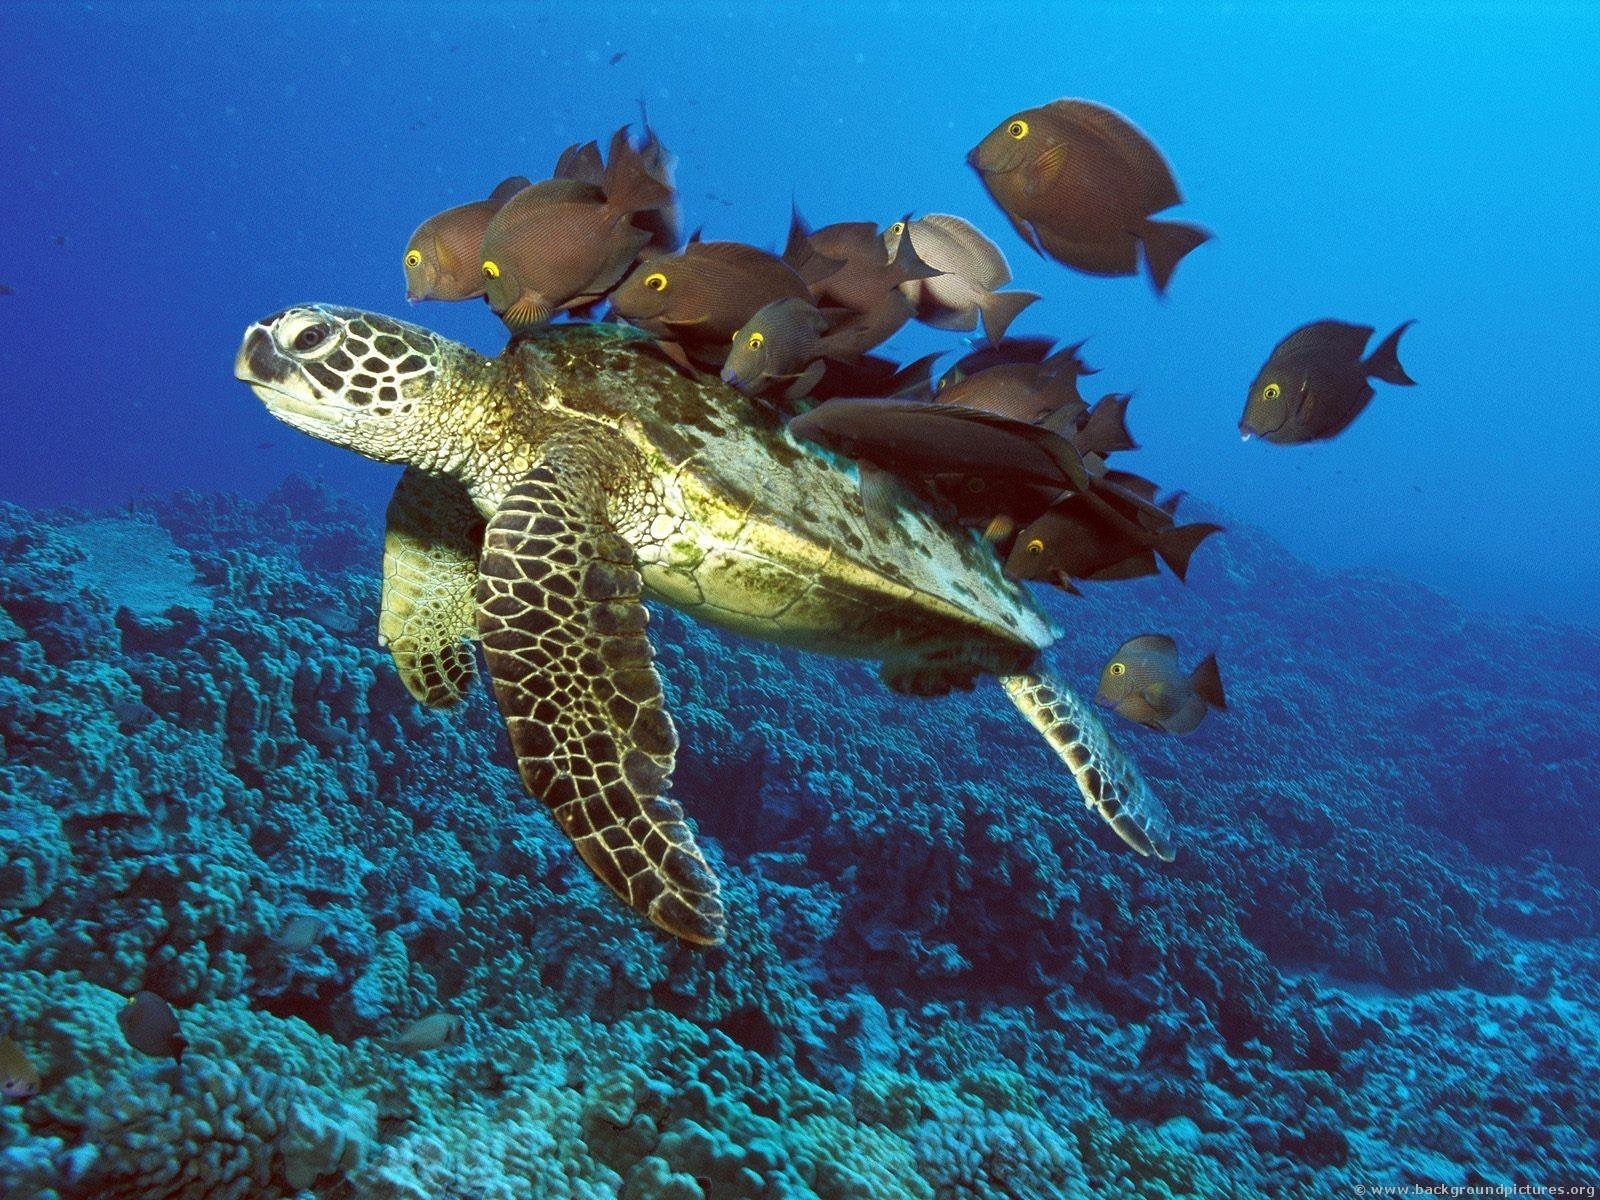 God's creation - turtle with fishes on its back.